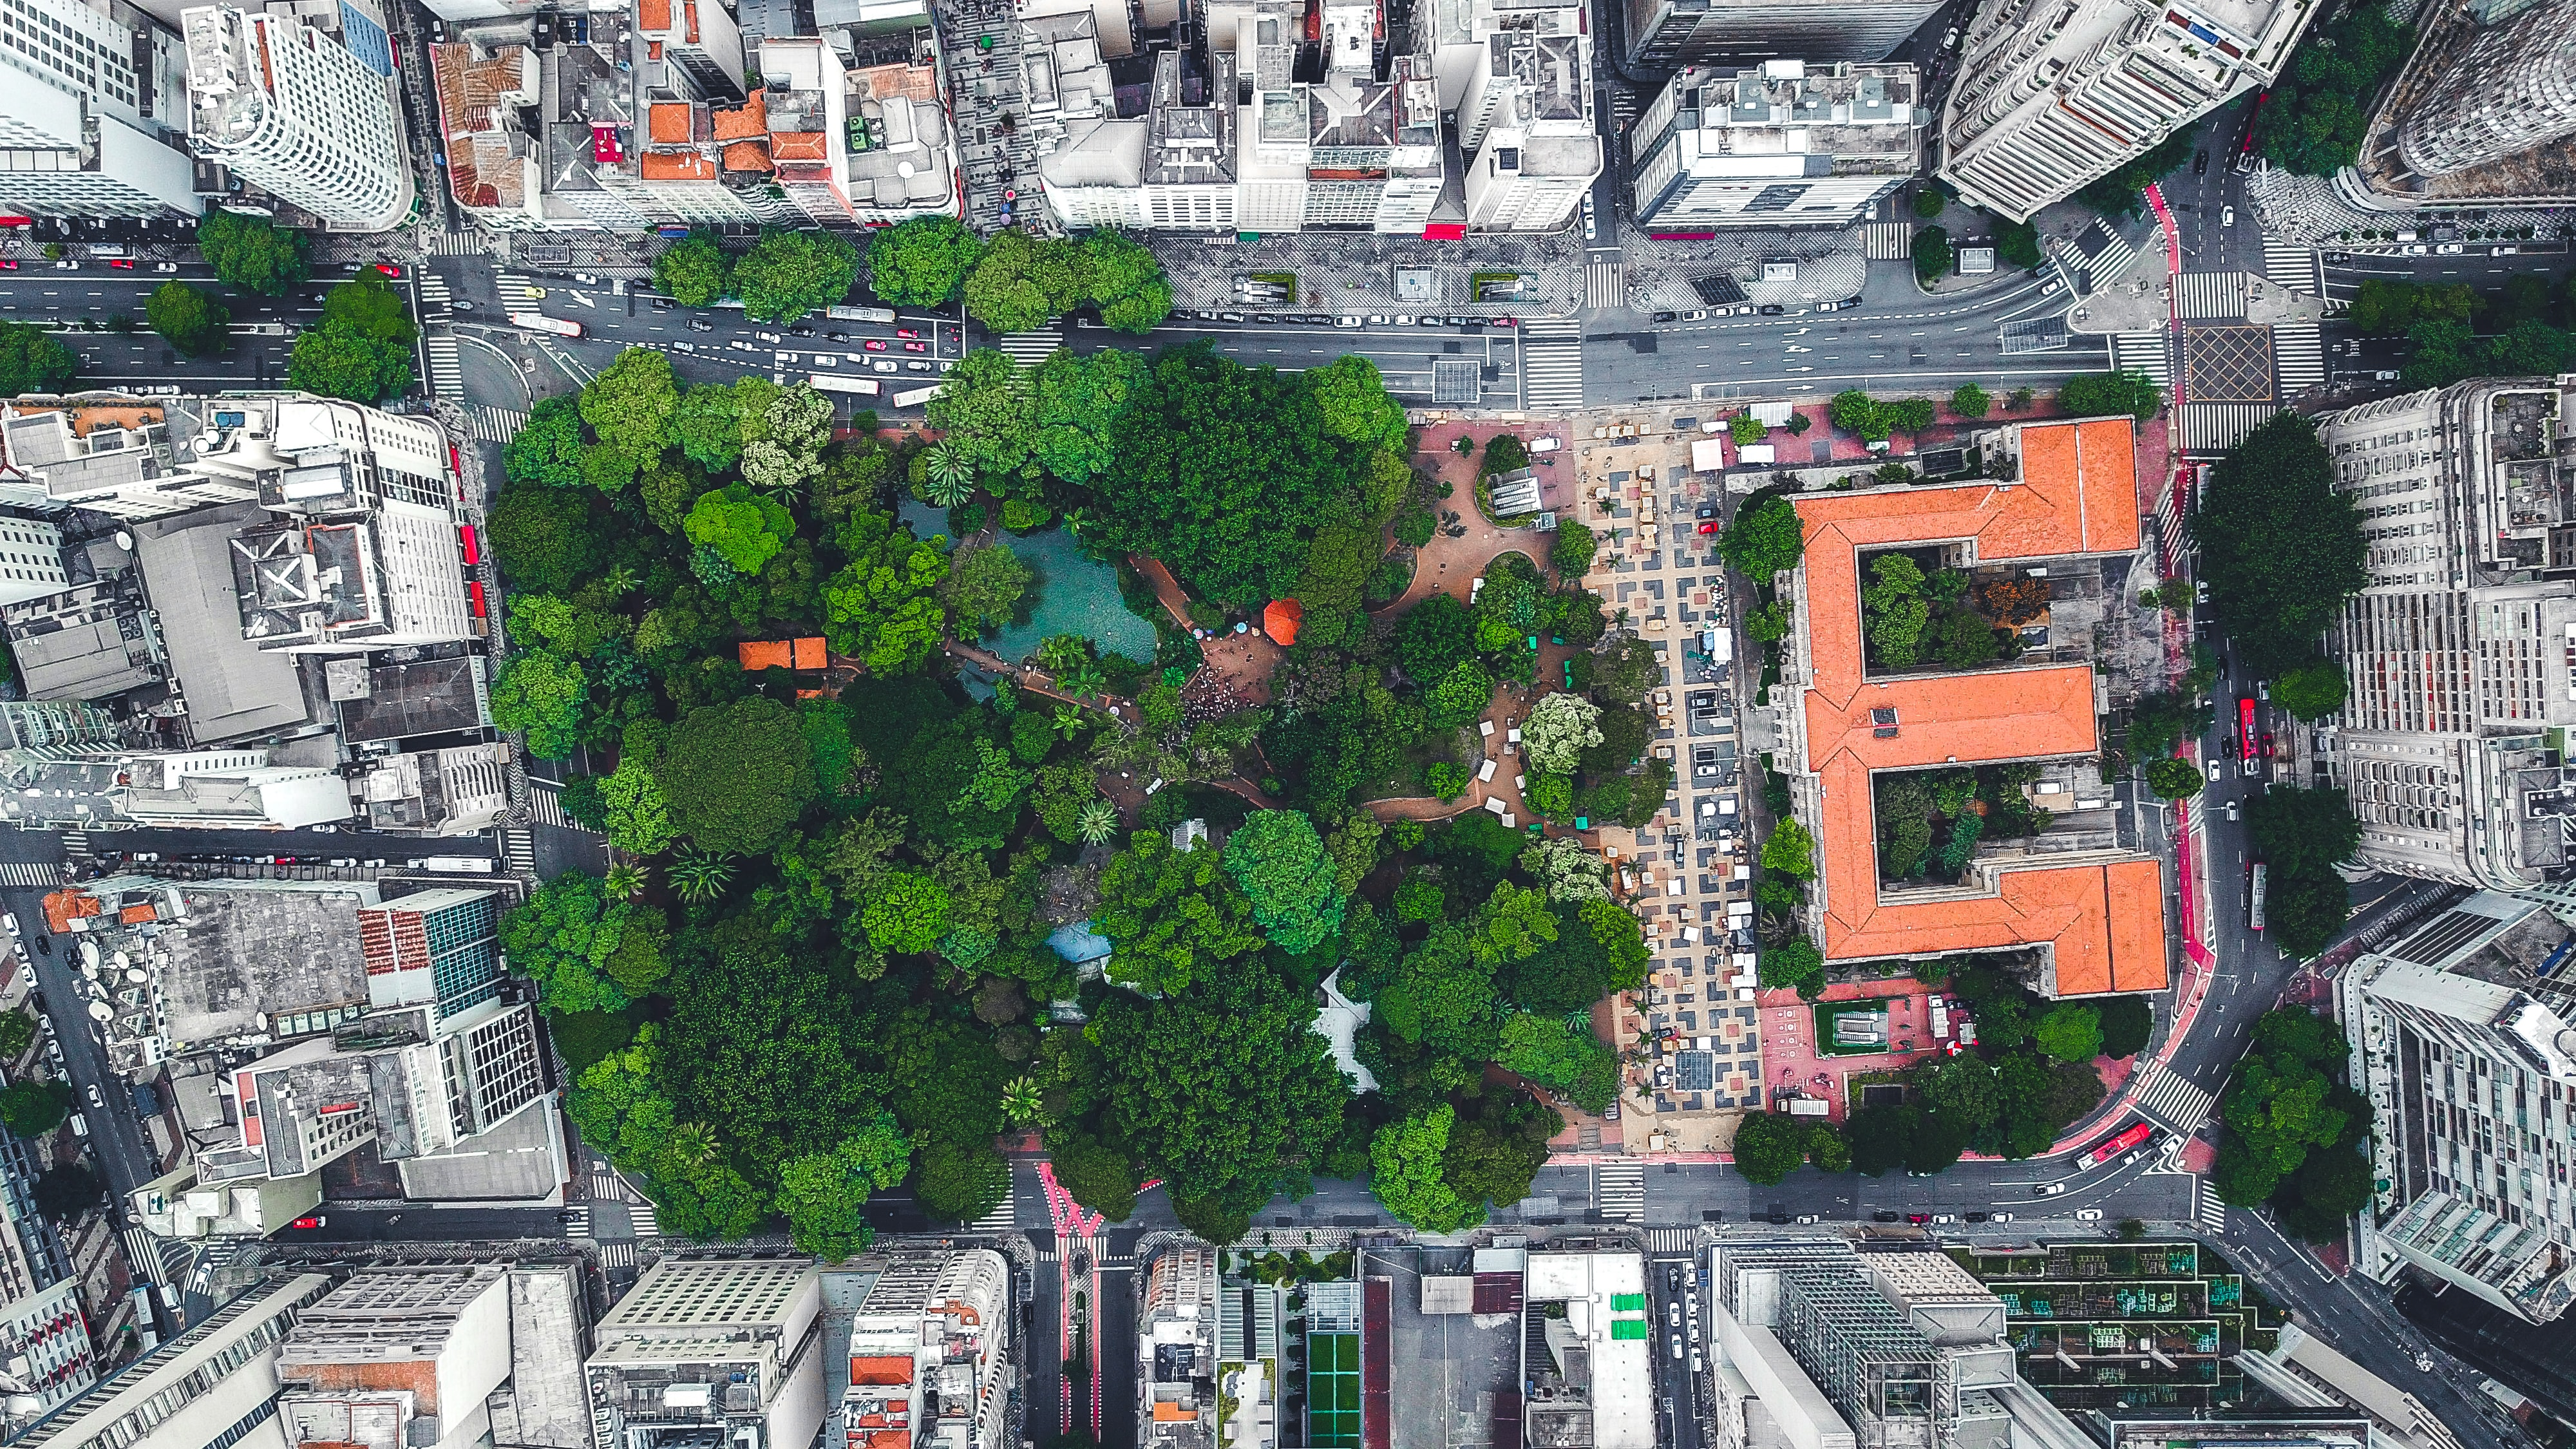 aerial photo of park in the middle of city